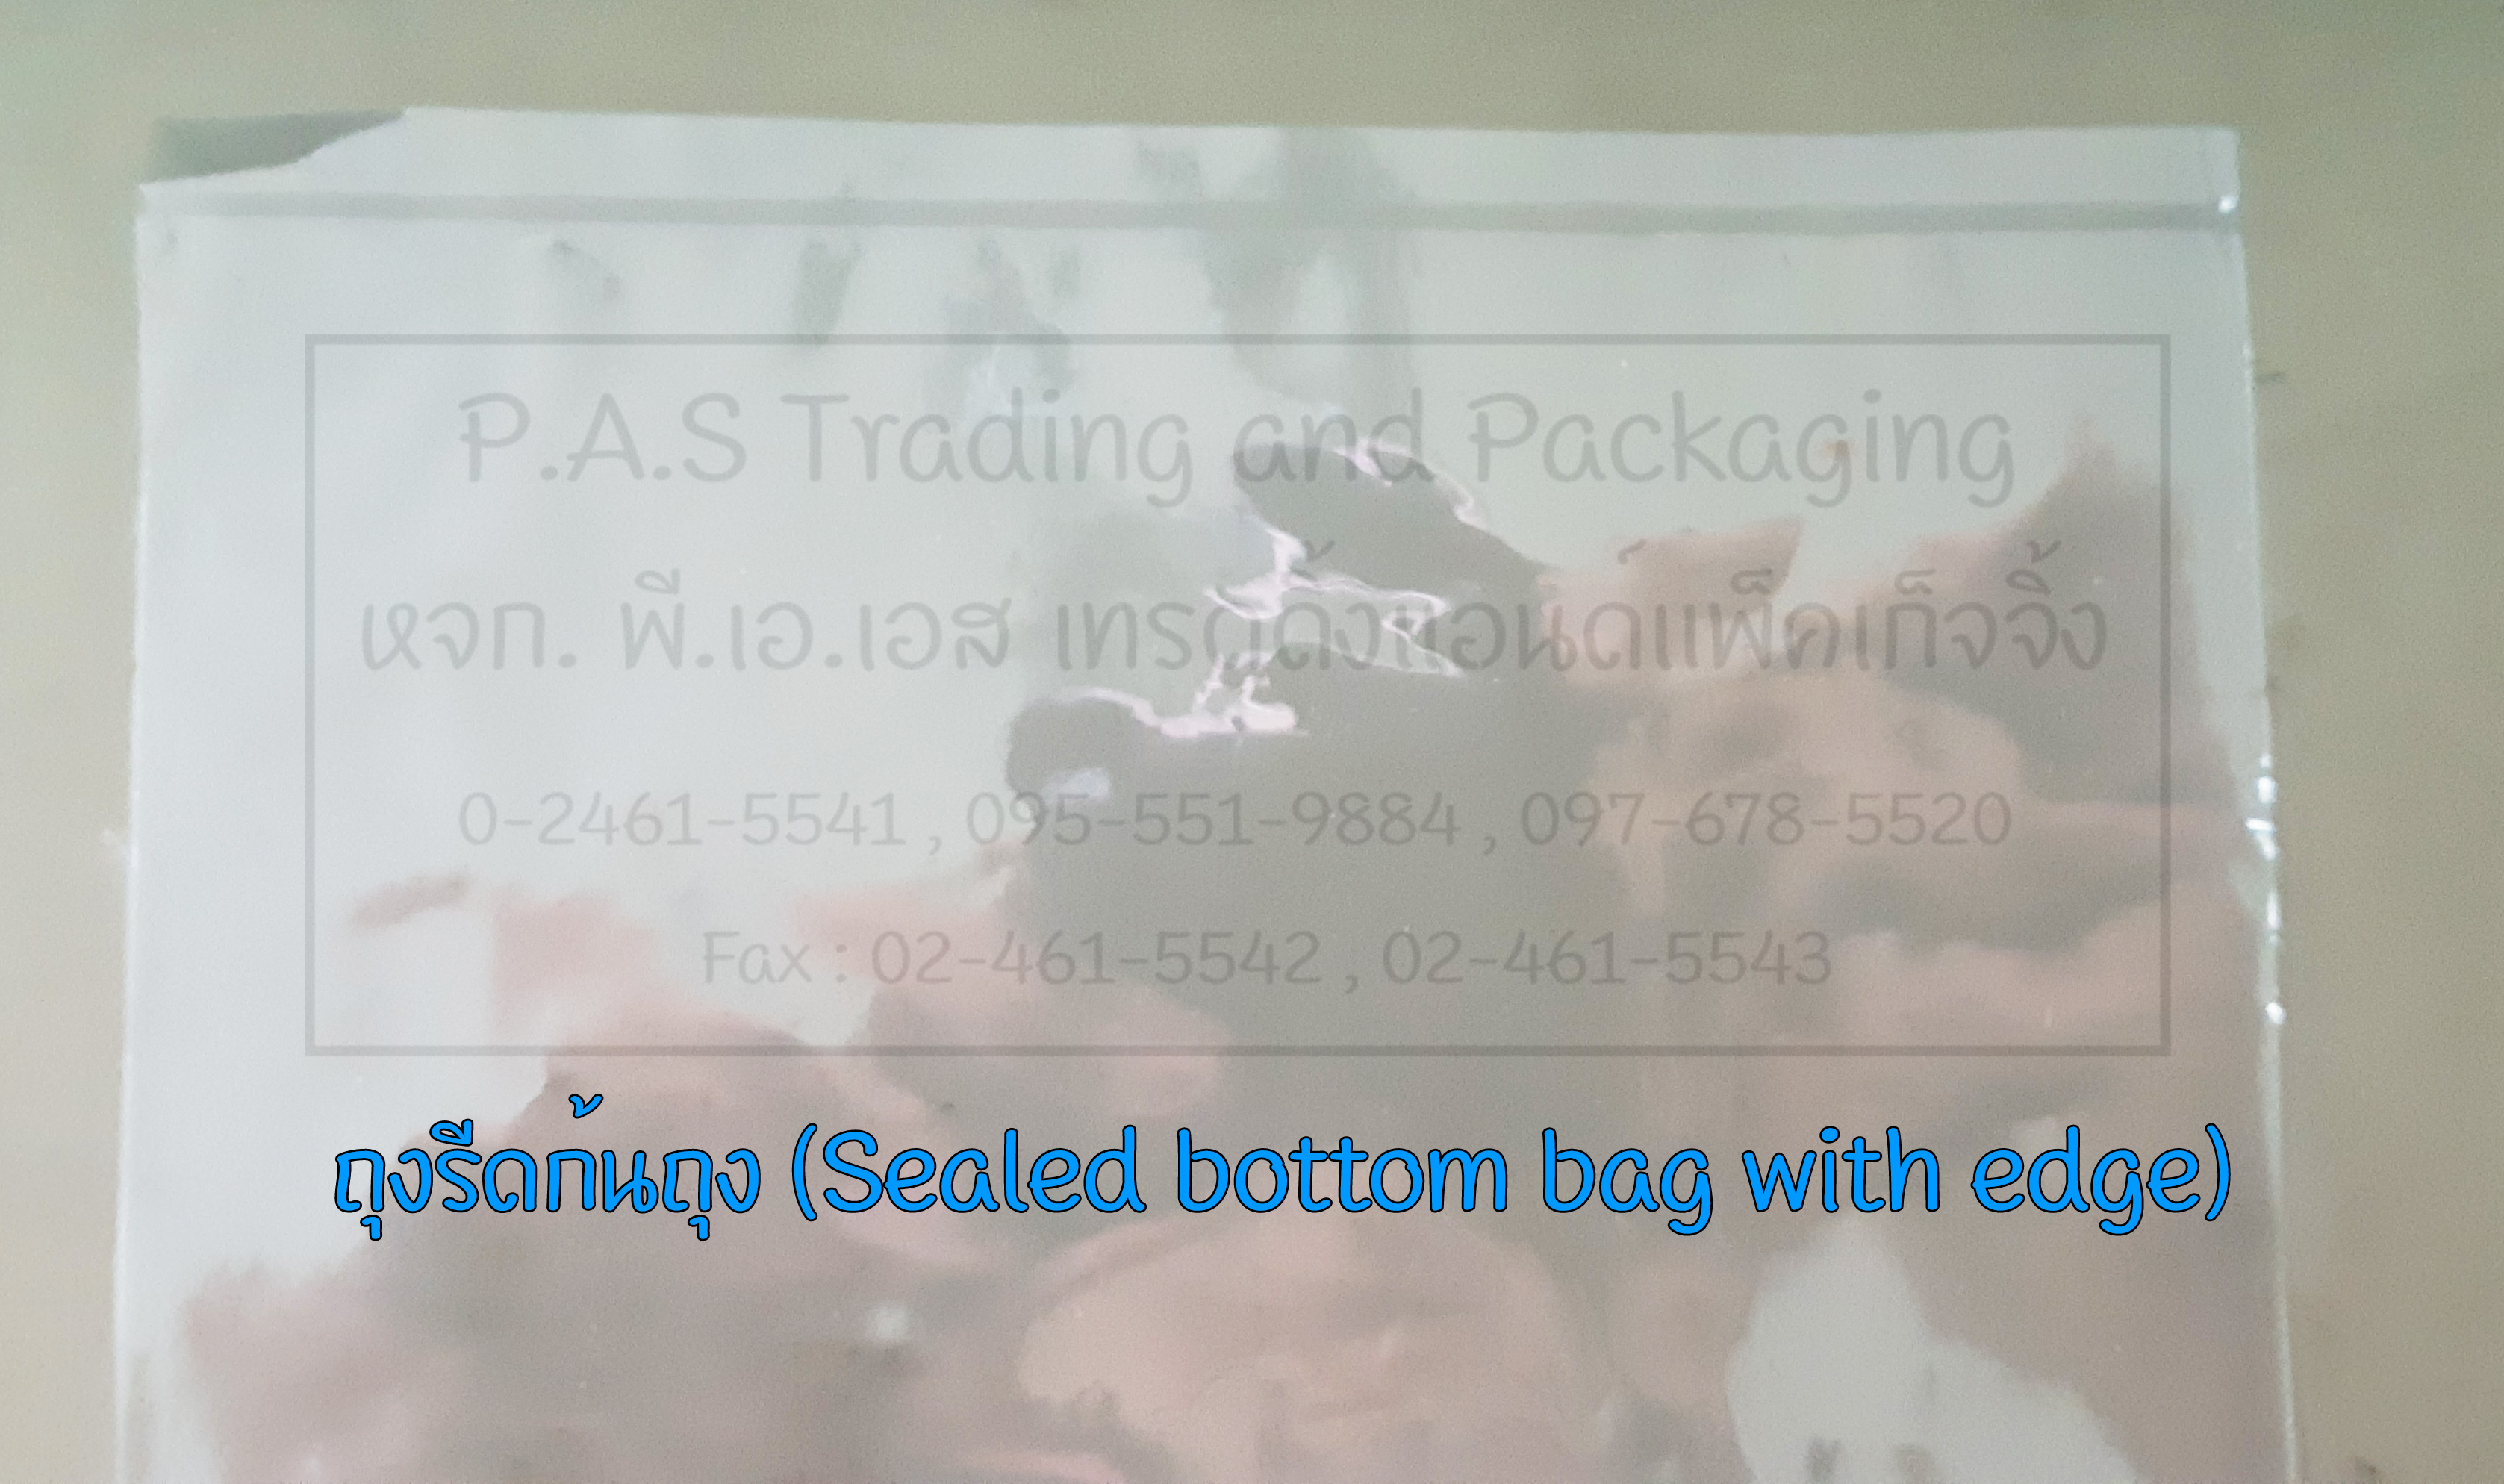 PAS trading and Packaging Ltd. Part.